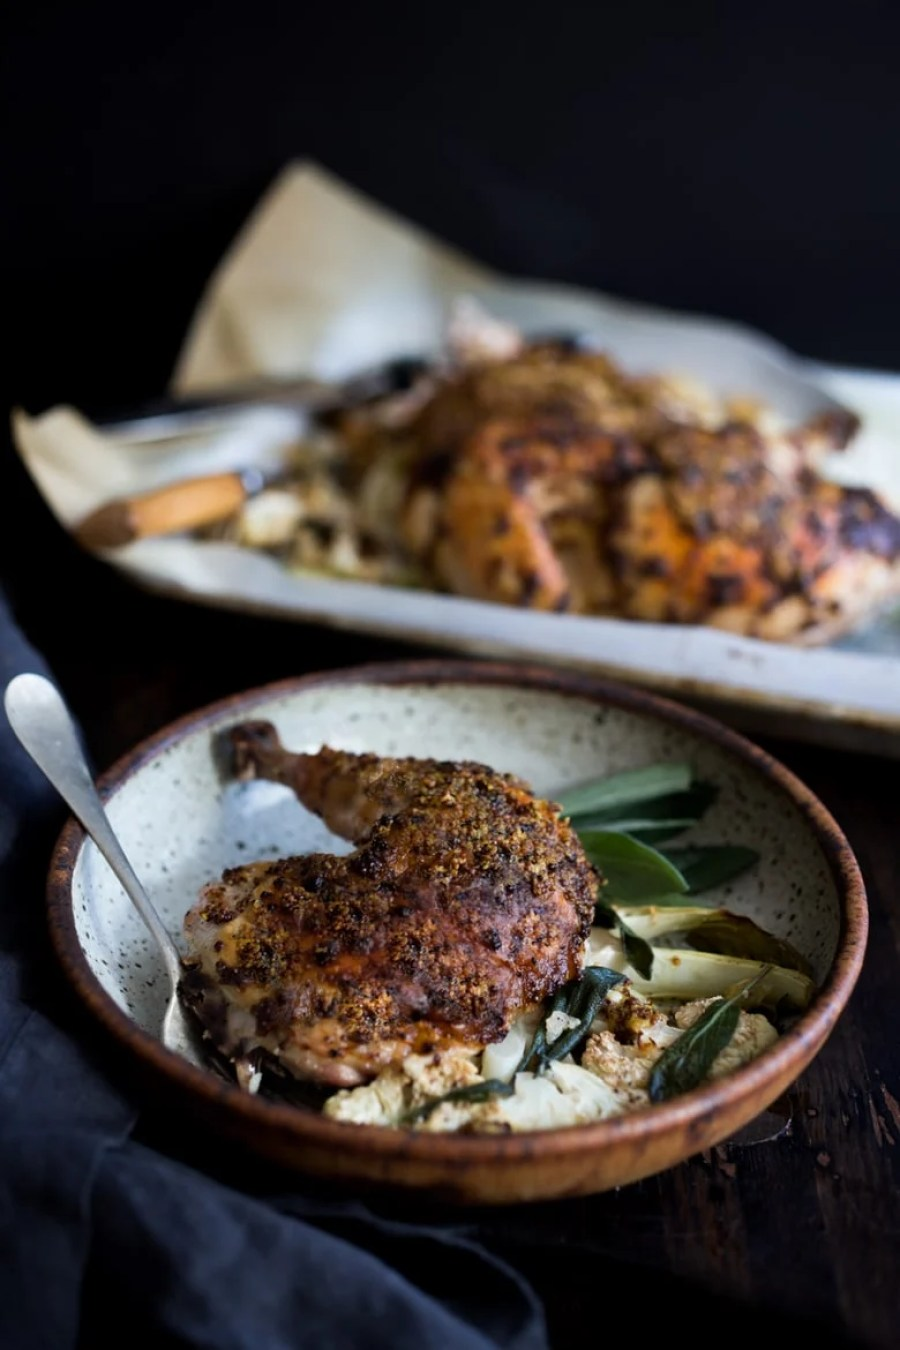 Mustard Roasted Chicken baked over Cauliflower steaks- a delicious one-pan meal!